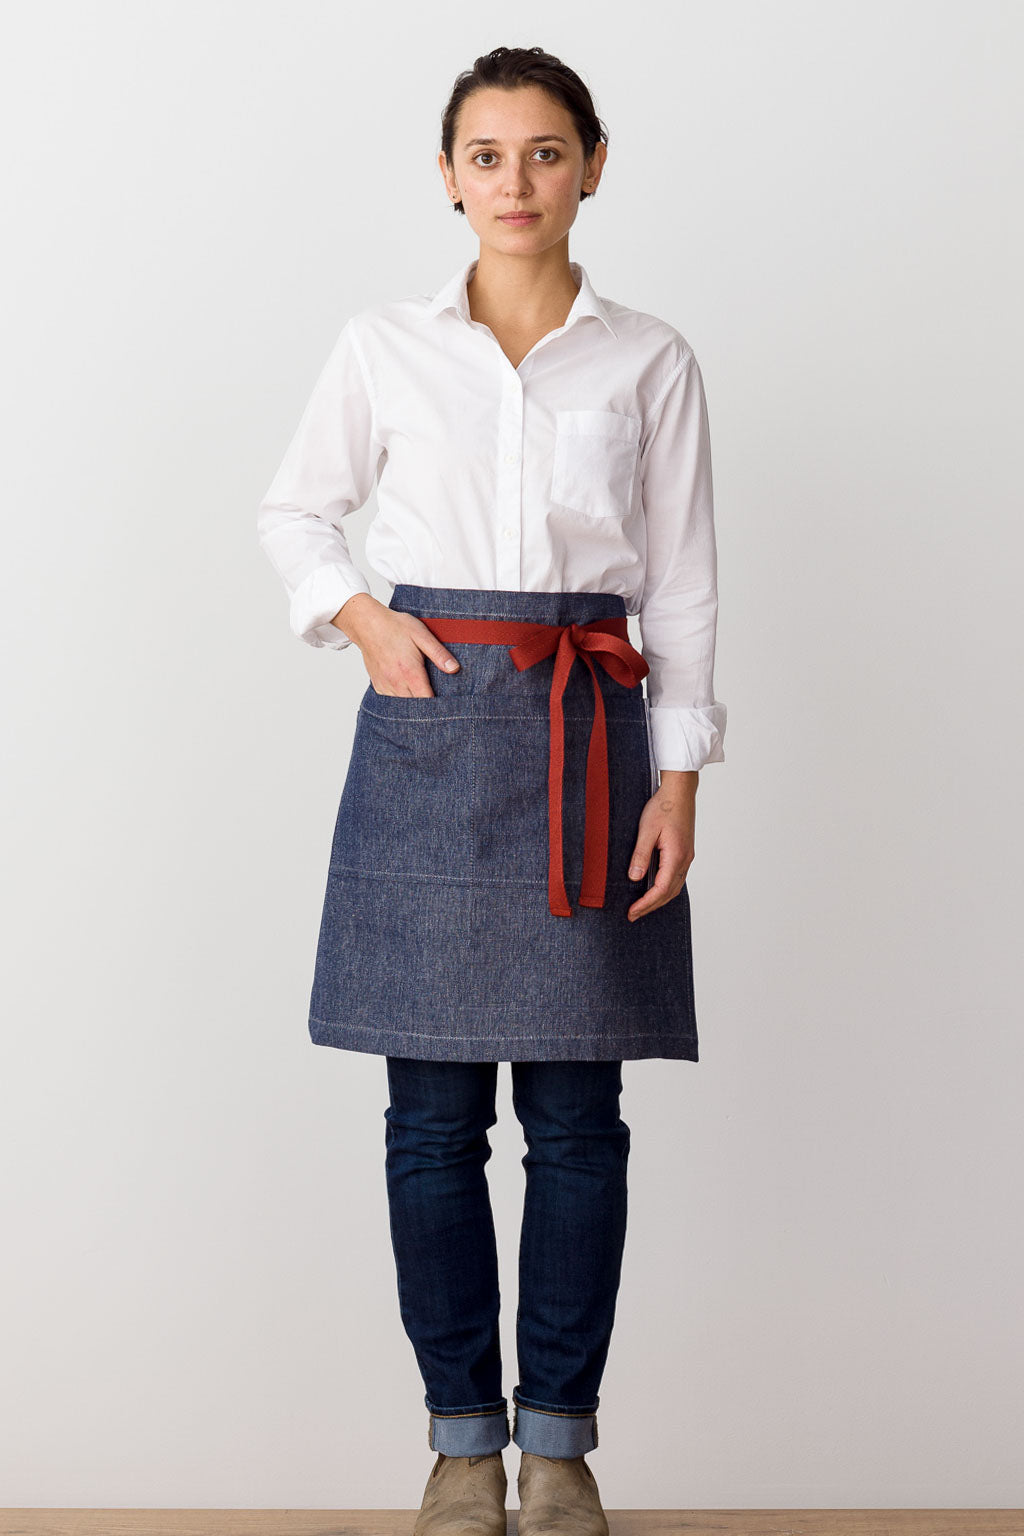 Bistro Middly Apron, Blue Denim with Red Straps, for Men and Women